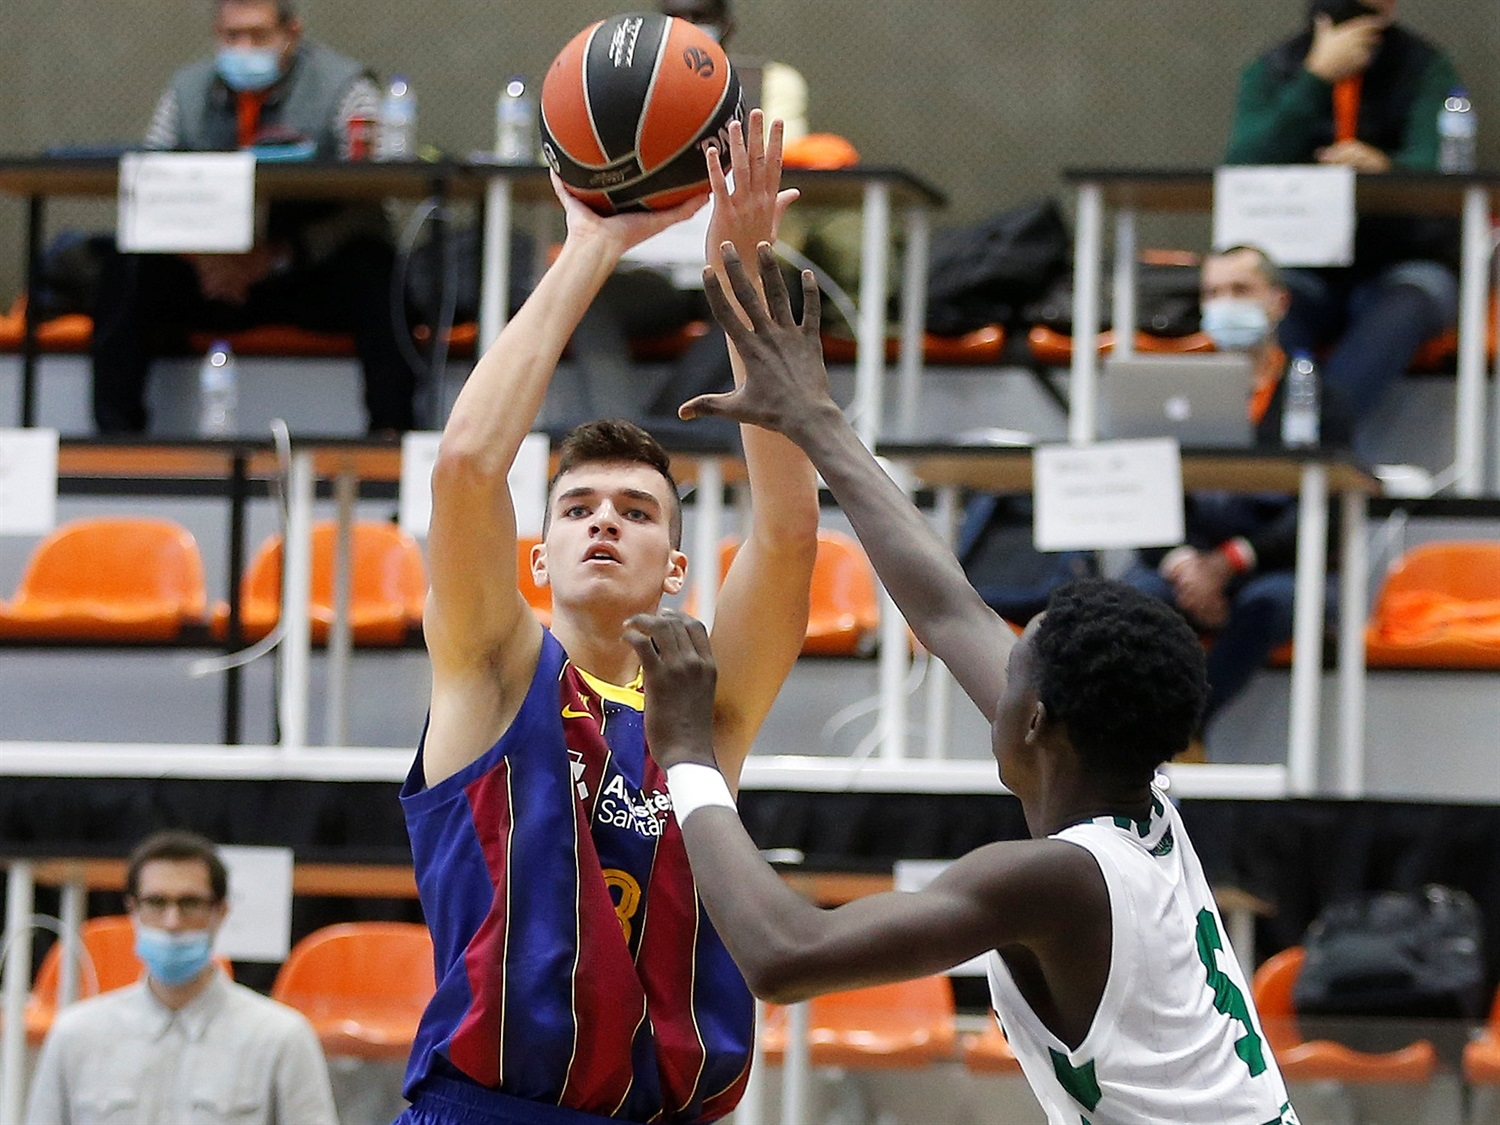 Ian Granja - U18 FC Barcelona (photo Miguel Angel Polo) - JT20